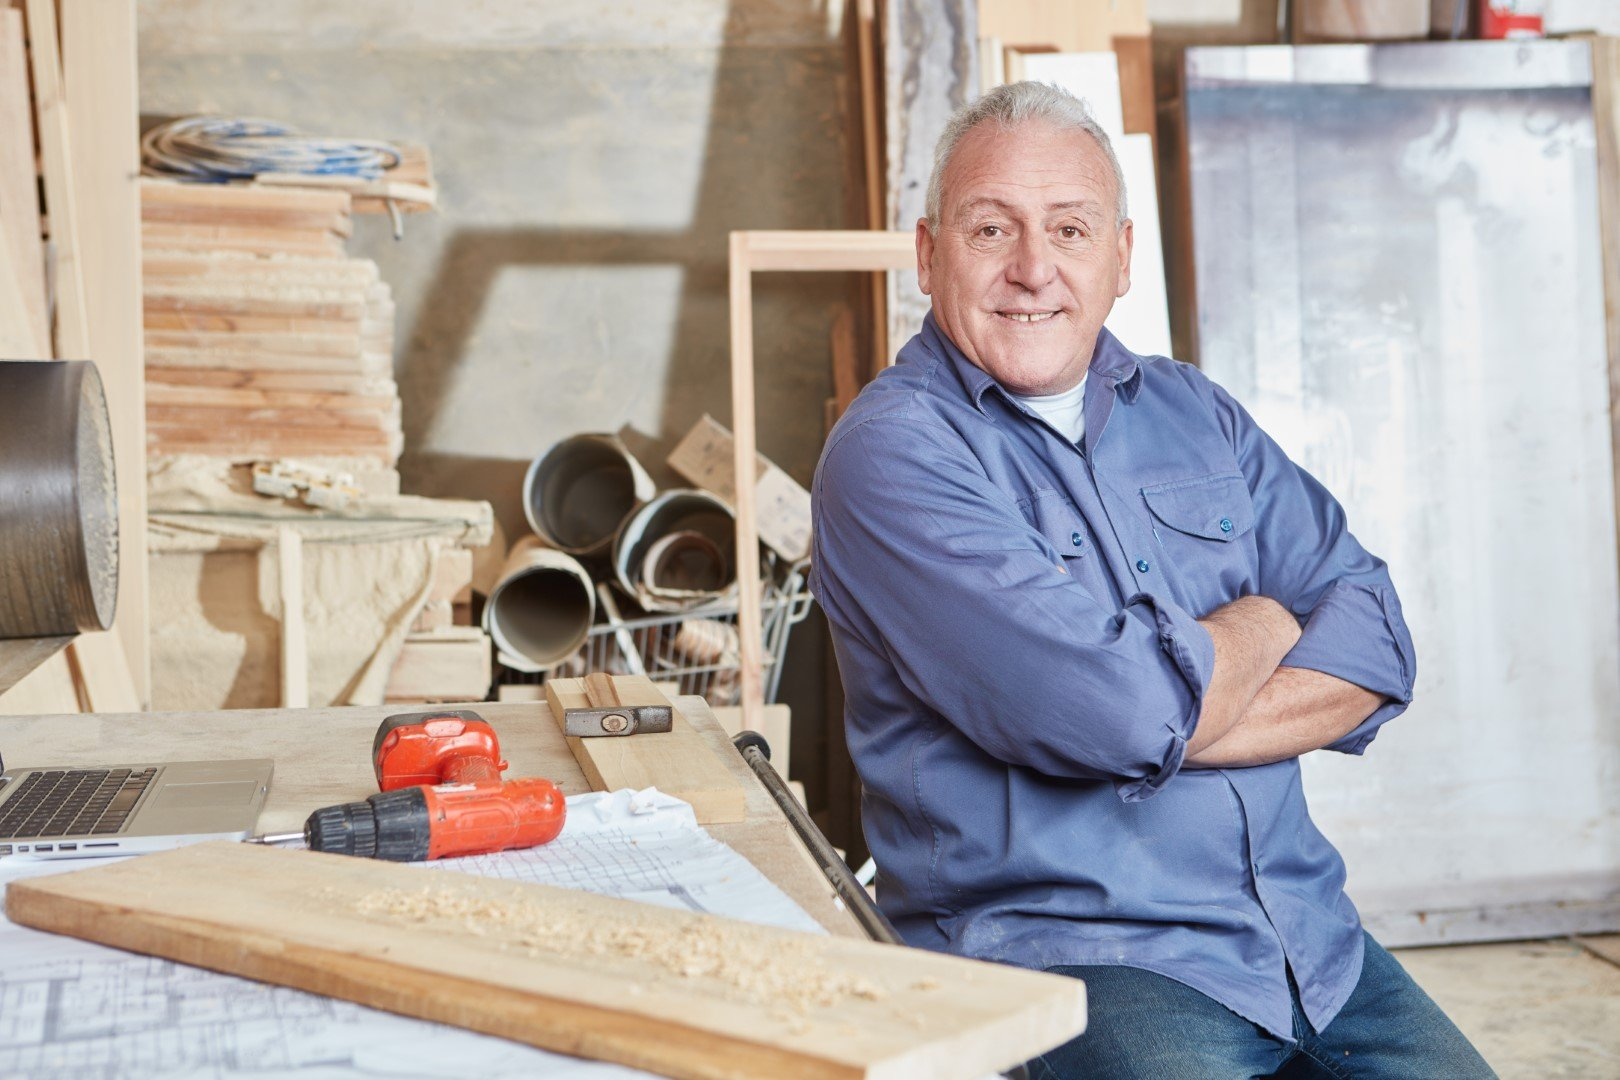 Evans Head Airpark supports local Men's Shed Association